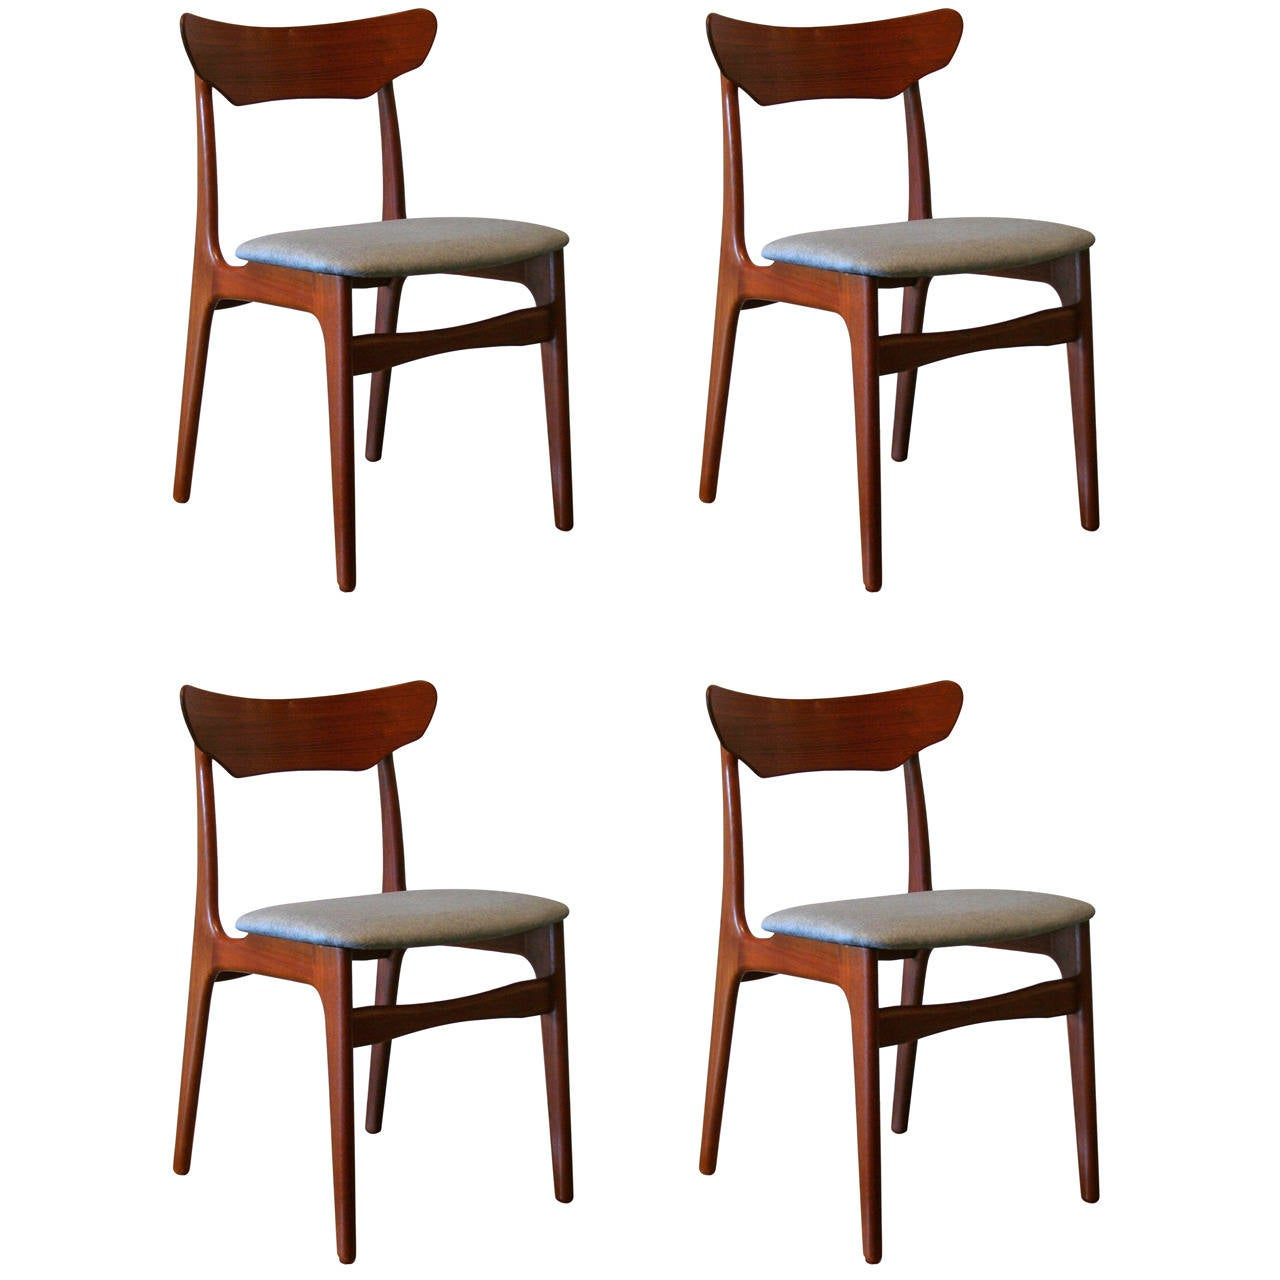 Danish Teak Dining Chairs Vintage Danish Teak Dining Chairs At 1stdibs